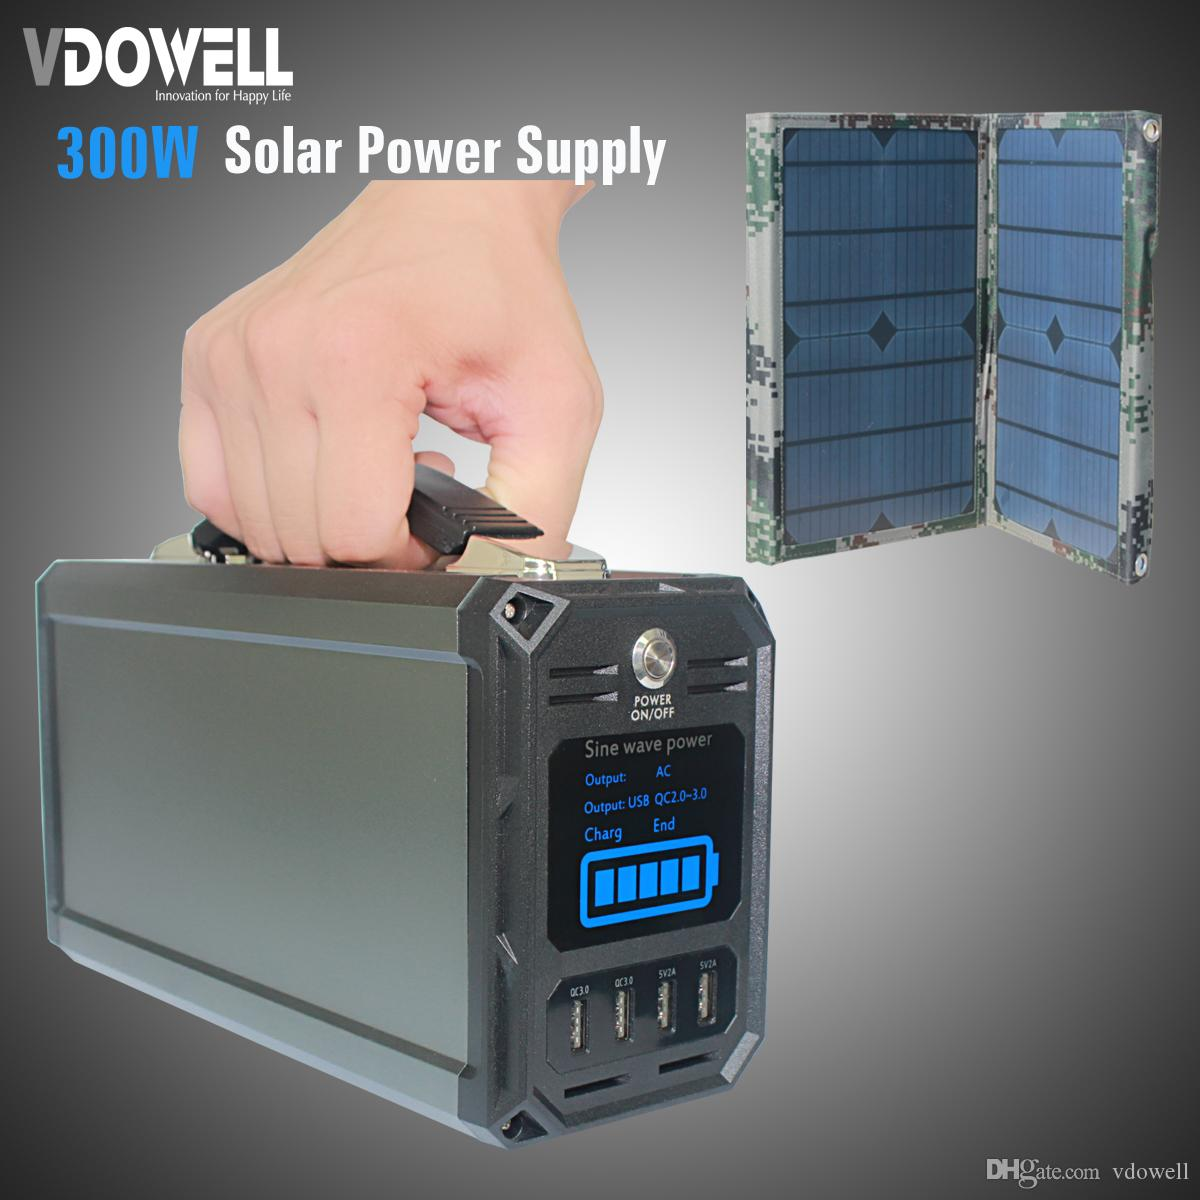 Solar Panel Battery Bank >> 300wh 60000mah Solar Backup Power Source Battery Bank With 40w Solar